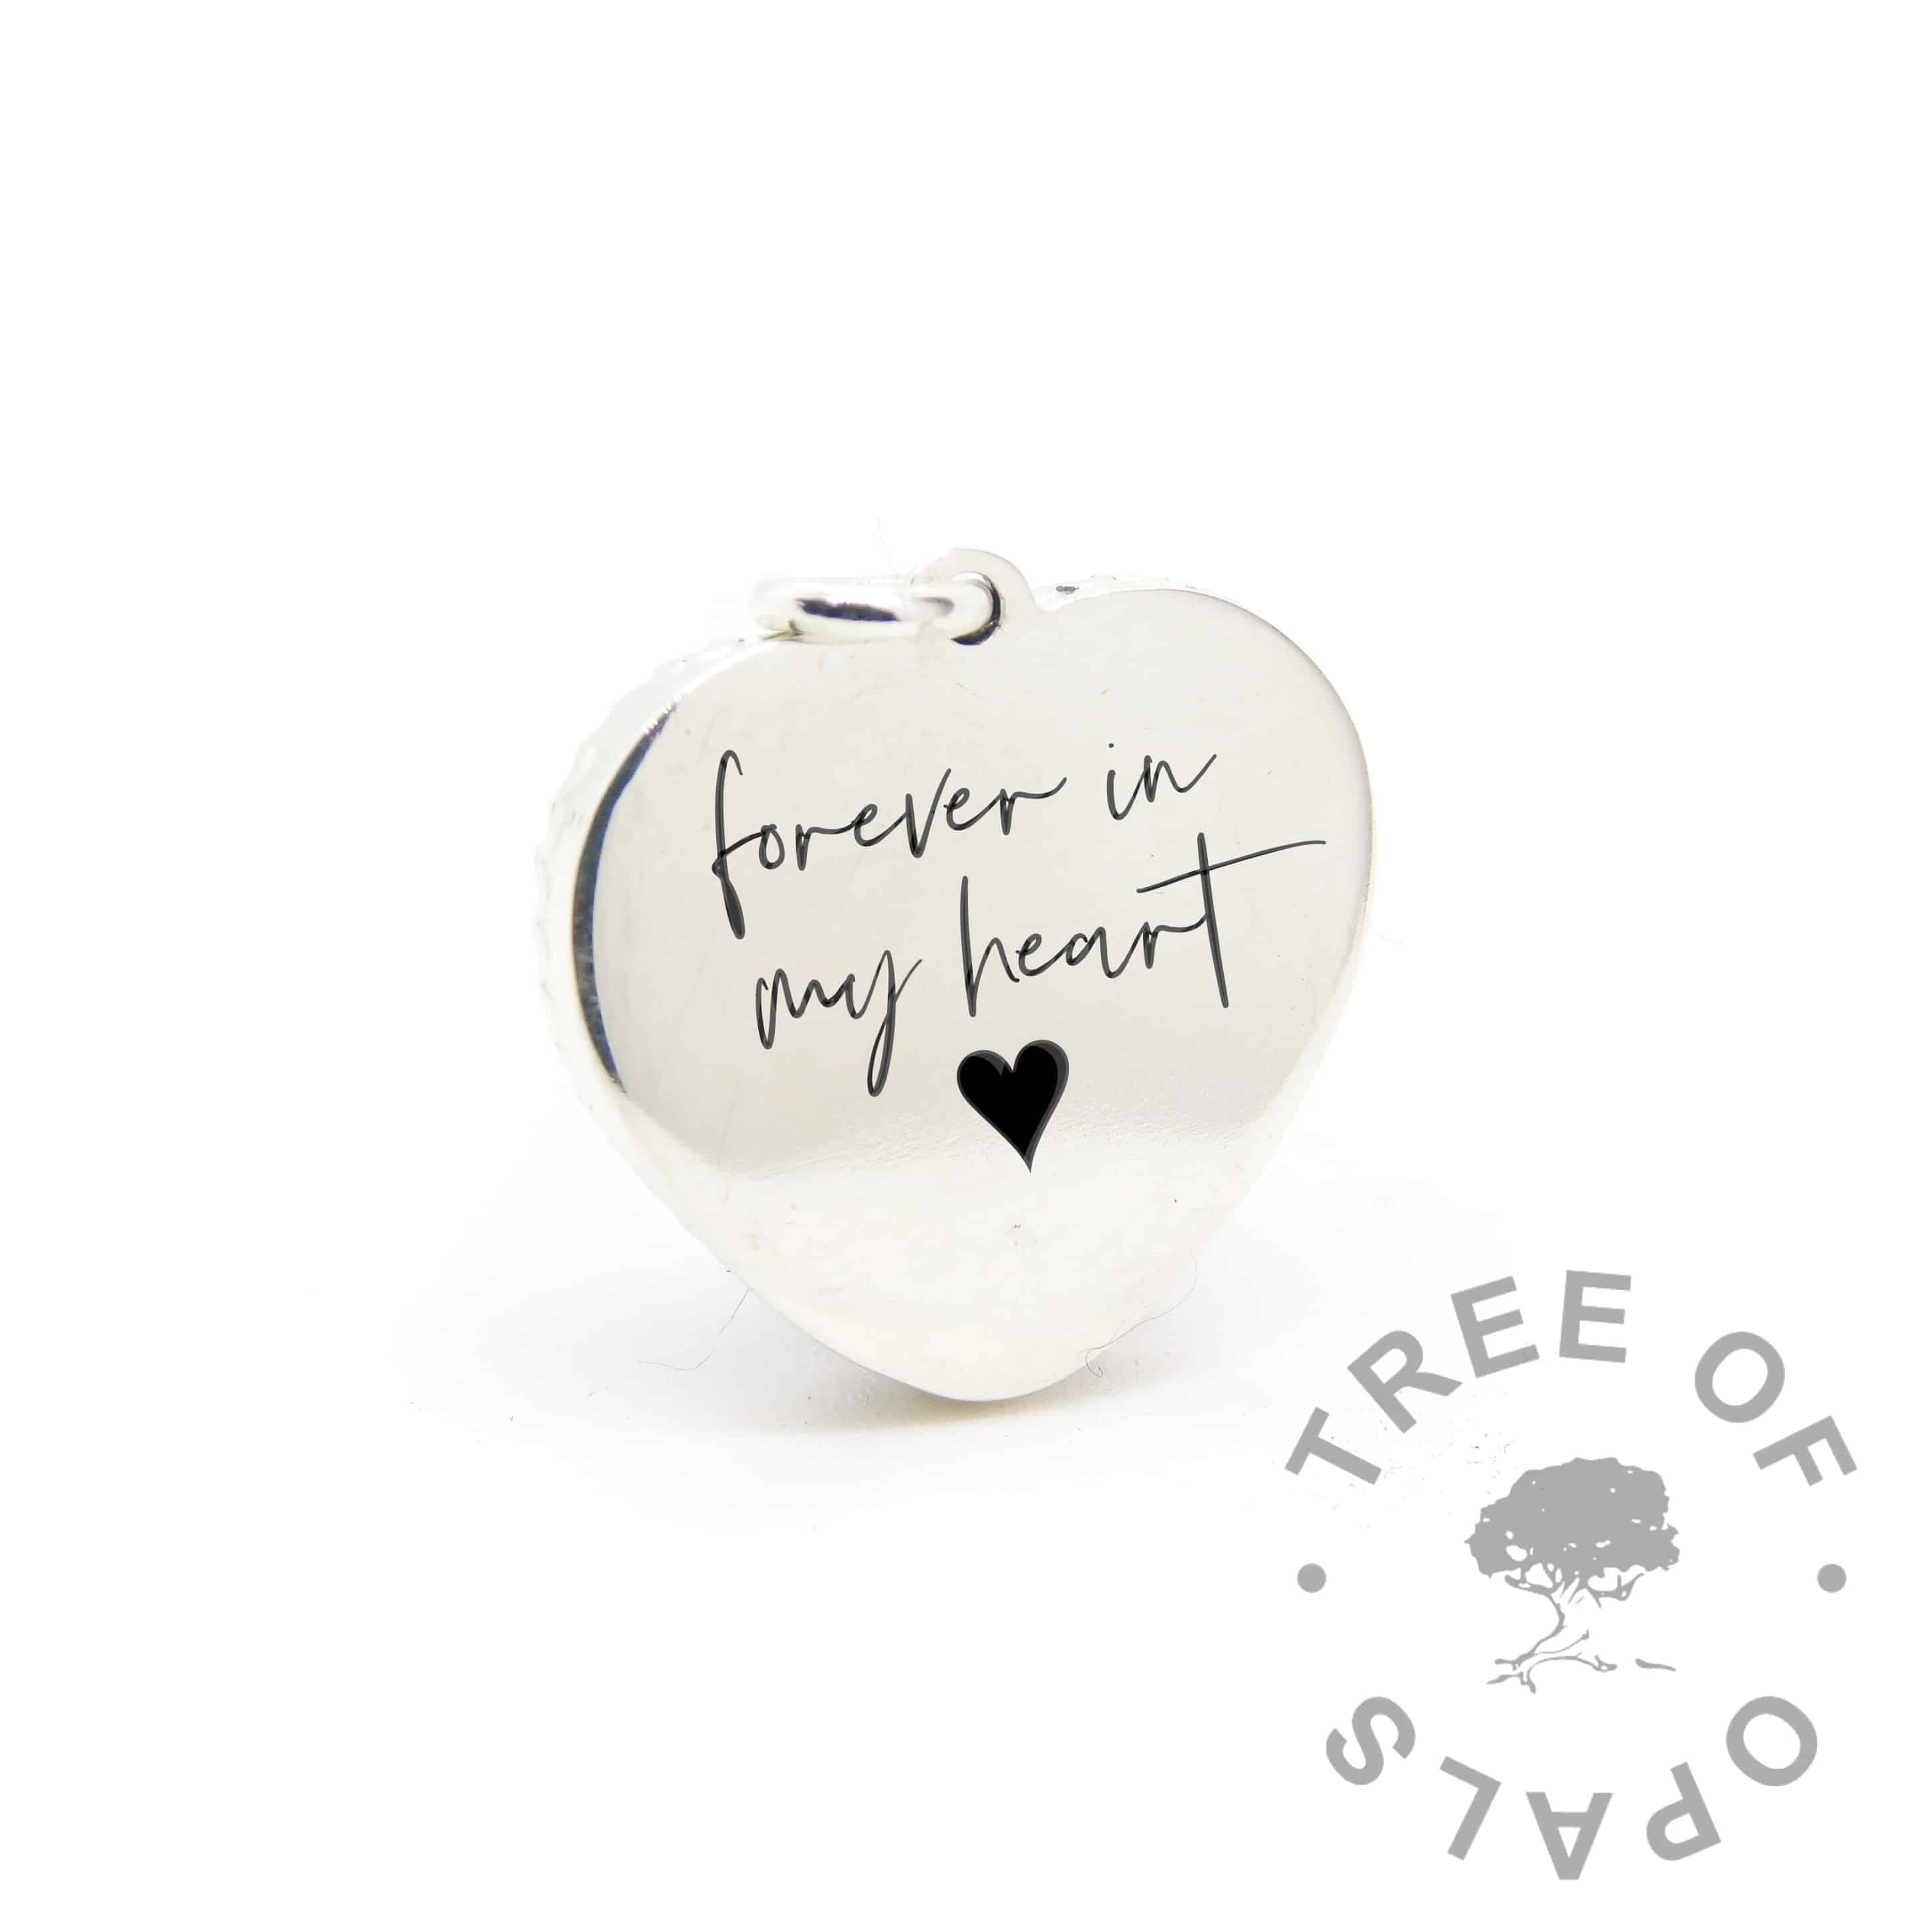 New style heart necklace setting back, with Silver South Script engraving mockup (shown without necklace chain)